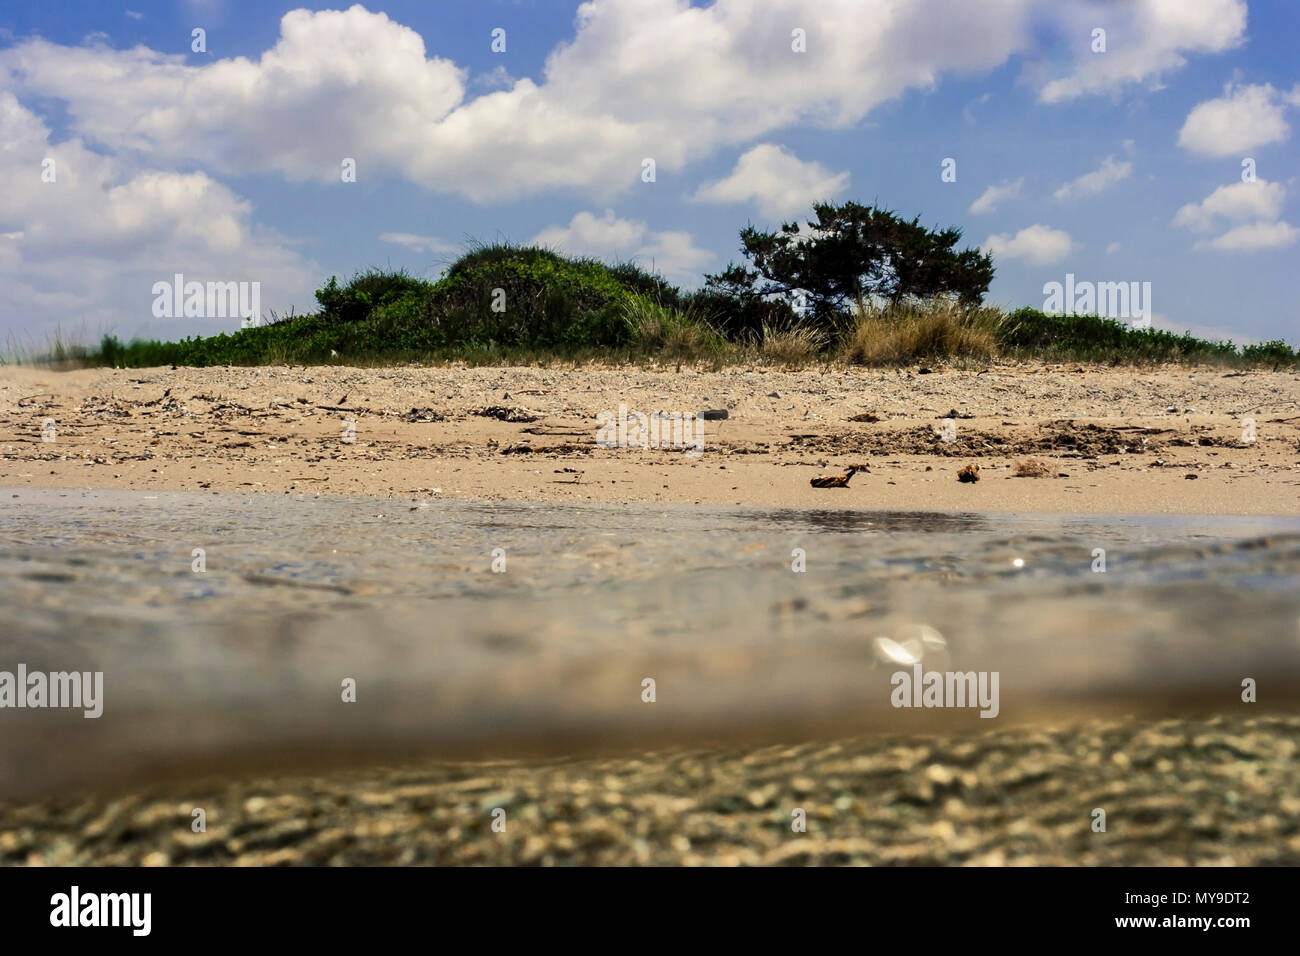 Split level over-under underwater sea image of foliage in Greek beach with golden sand on bright sunny day, - Stock Image